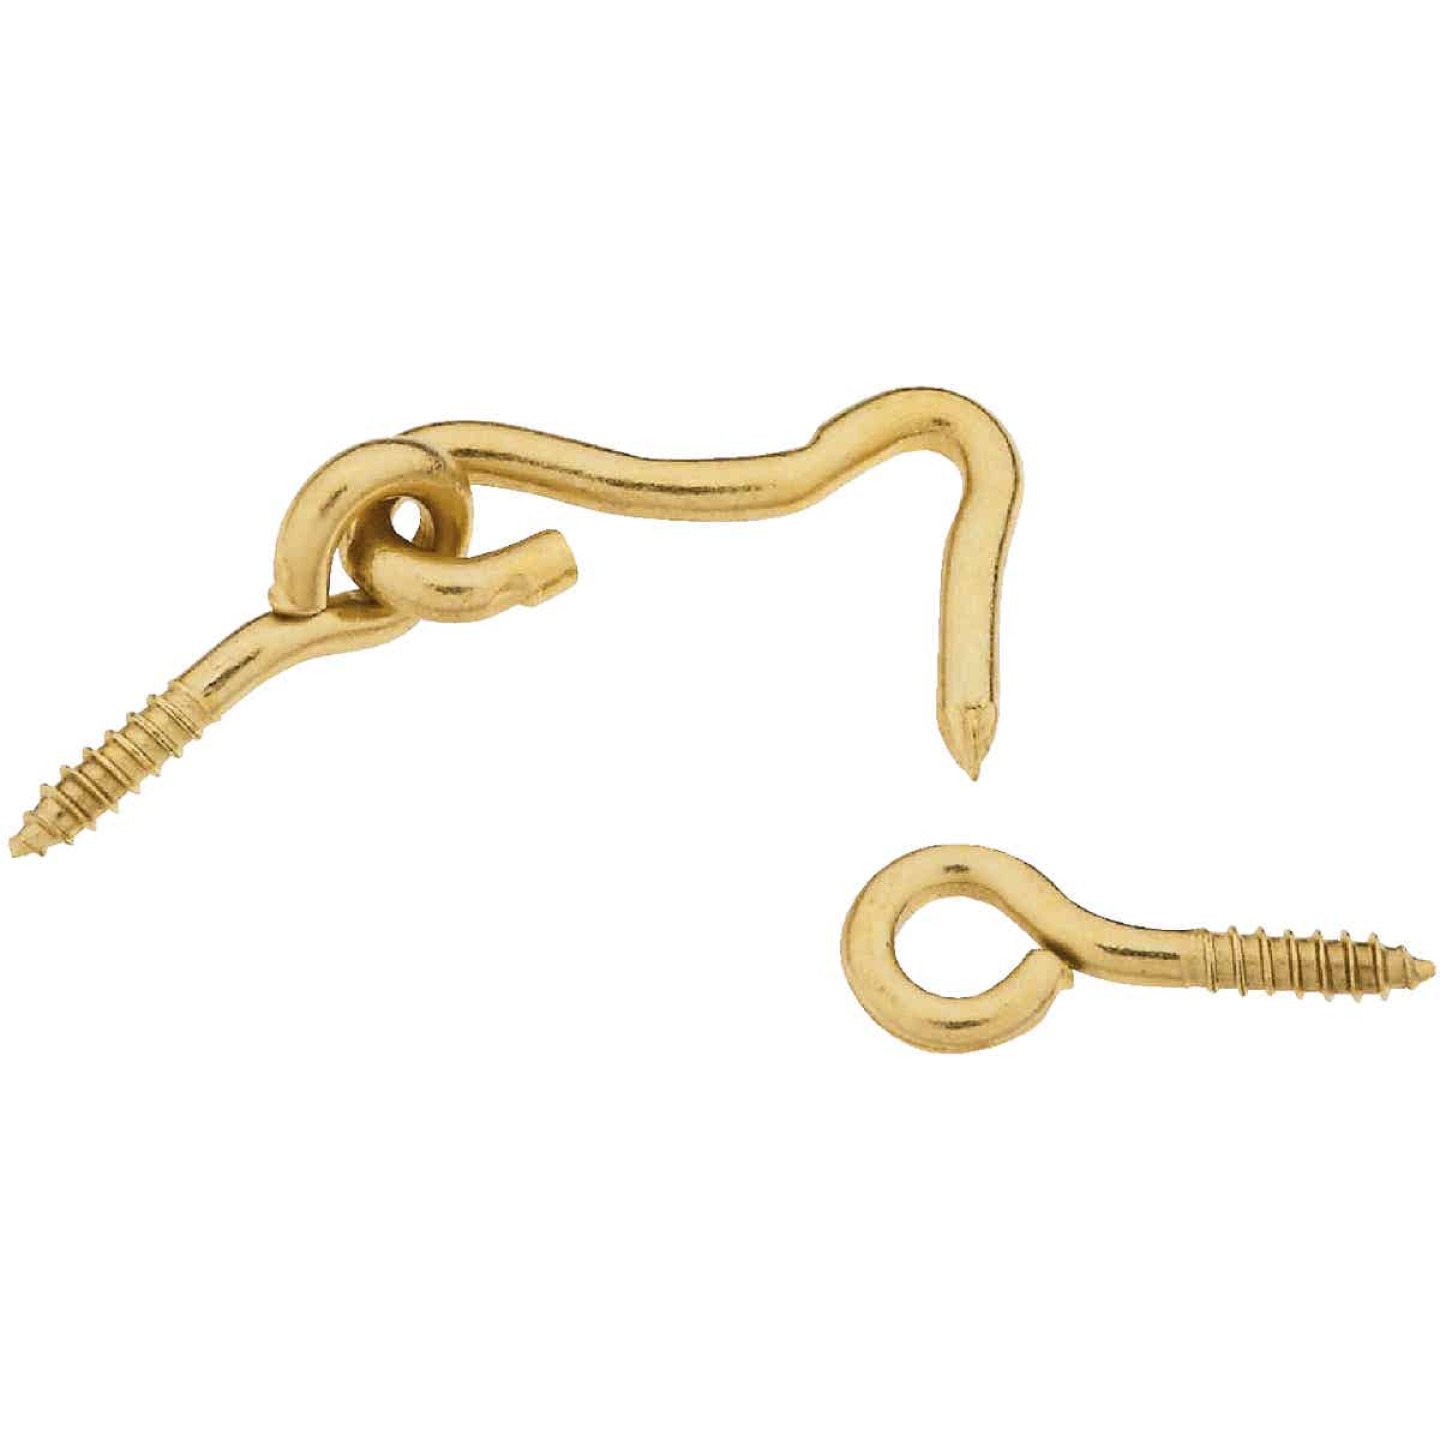 National Solid Brass 1 In. Hook & Eye Bolt (2 Ct.) Image 1